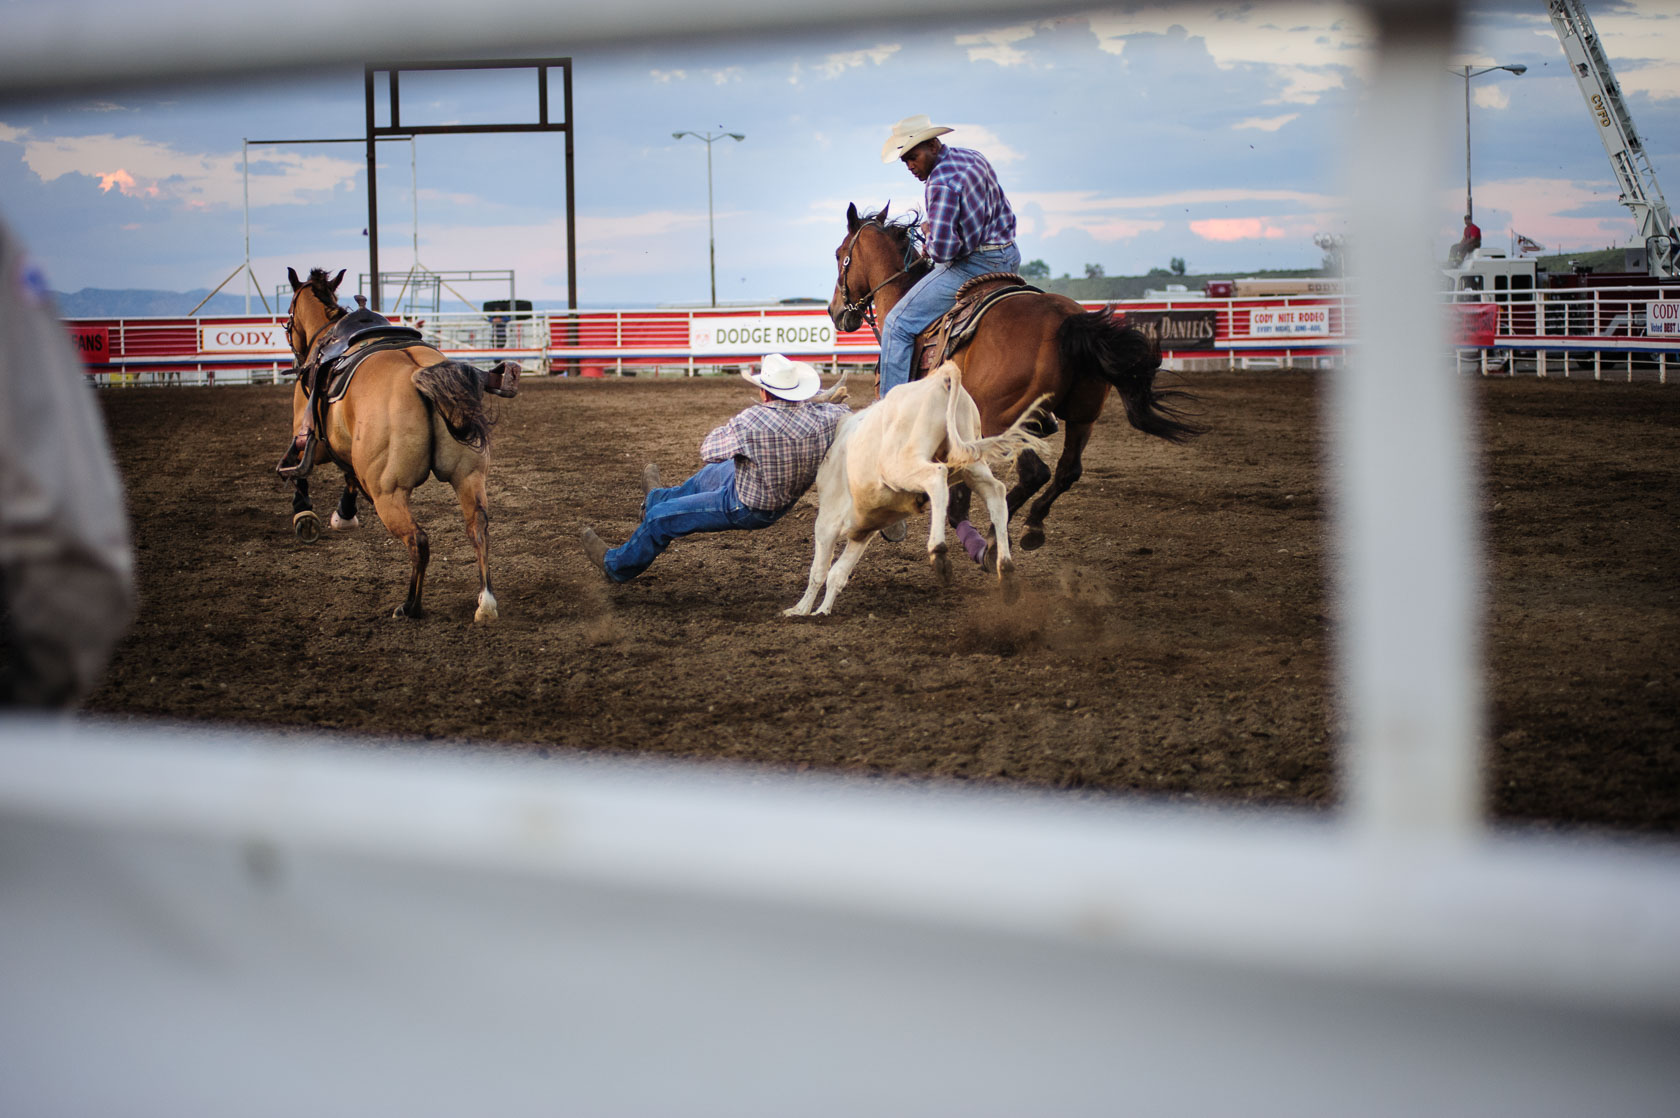 Bulldogging, Cody, Wyoming